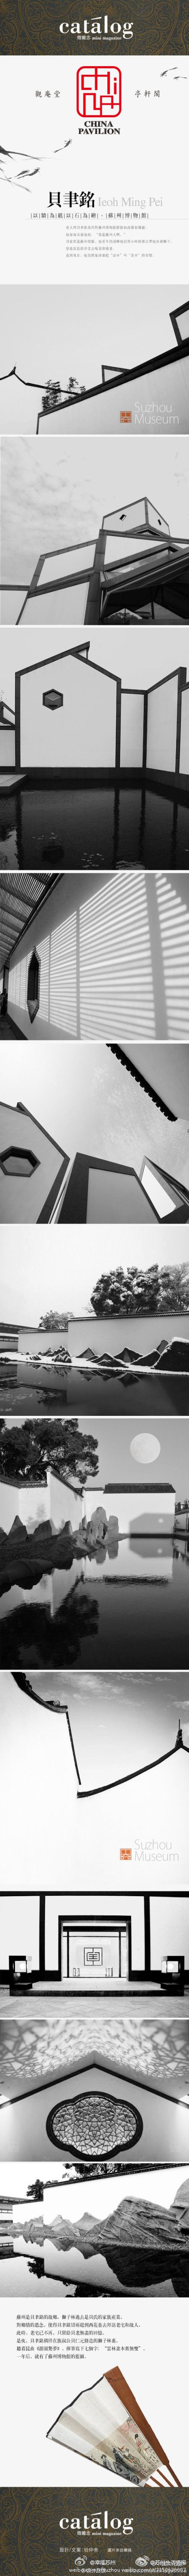 suzhou museum, designed by I.M Pei, incorporates many design elements of classical Chinese gardens.